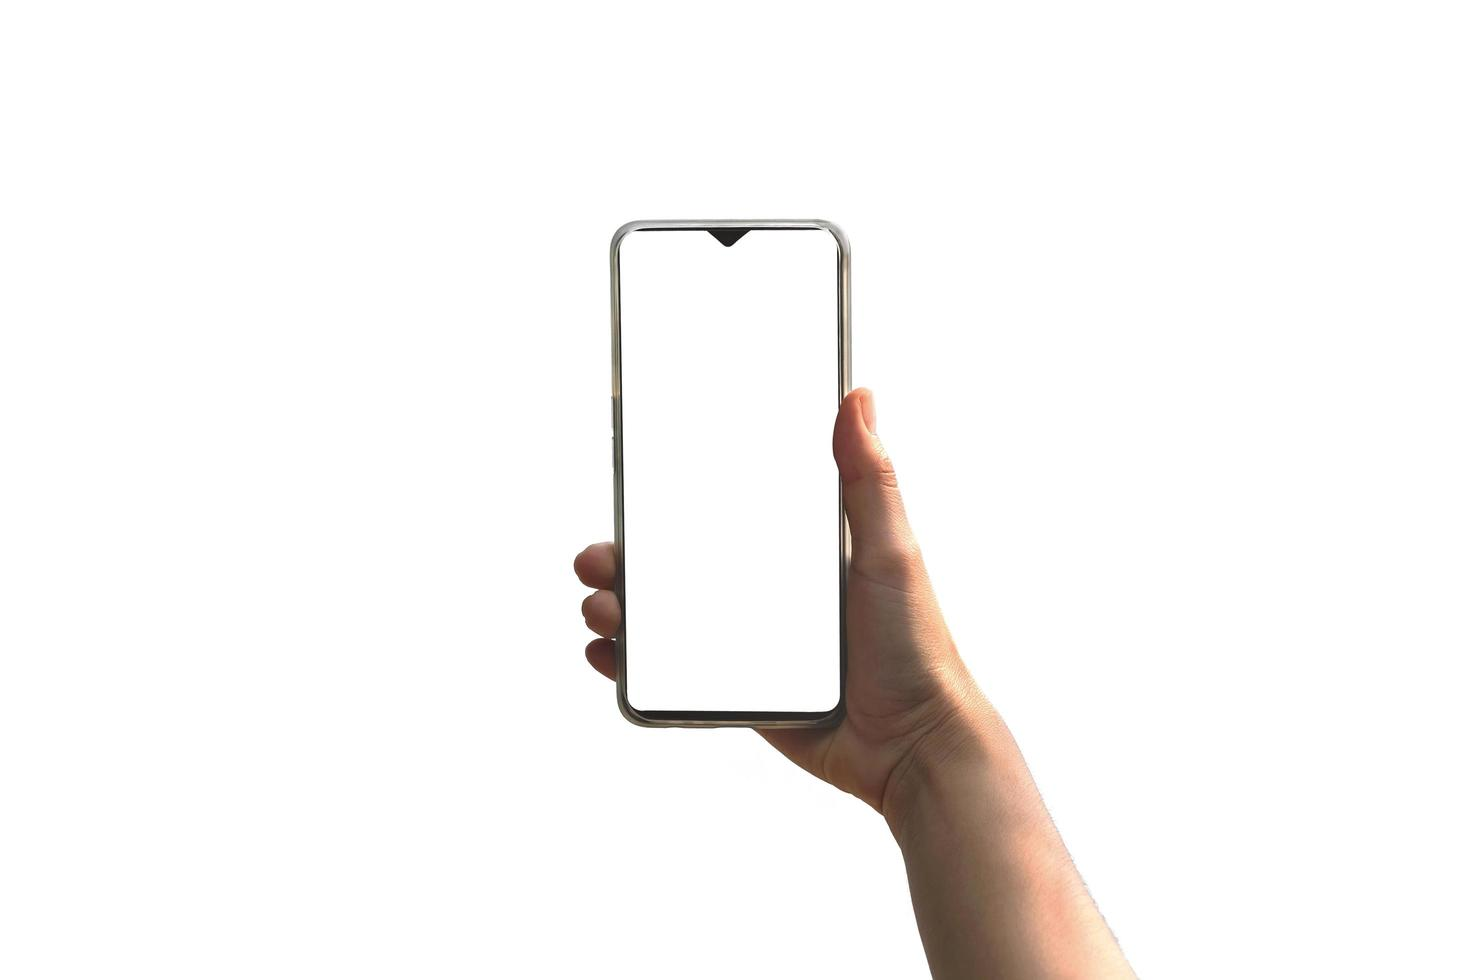 Human hand holding a smartphone with a blank white screen on a white photo